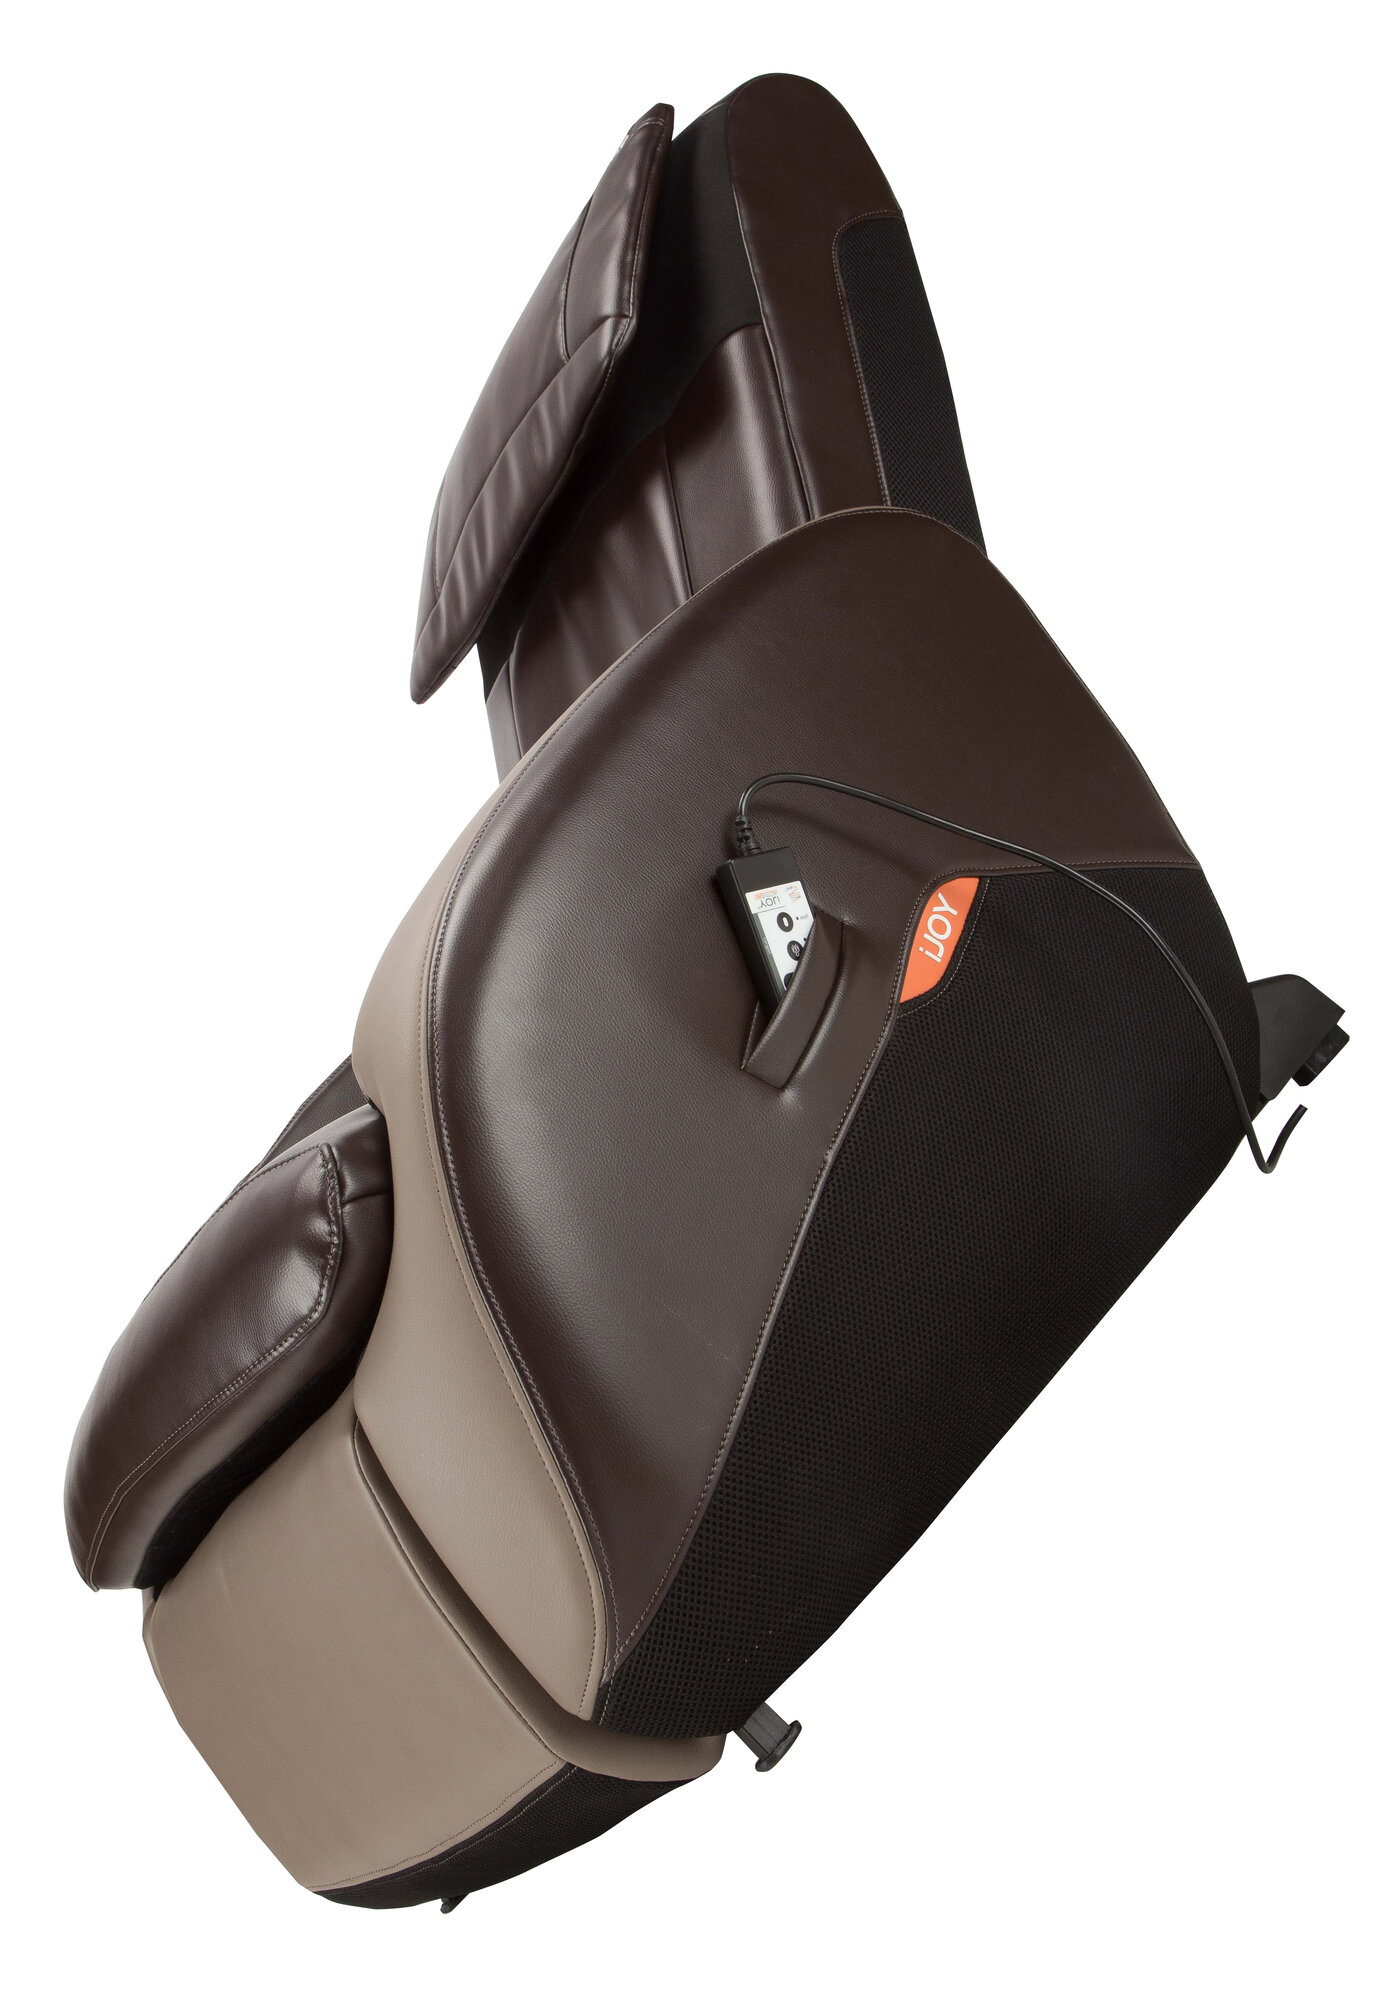 Human Touch Ijoy Active 2 Zero Gravity Massage Chair Ebay